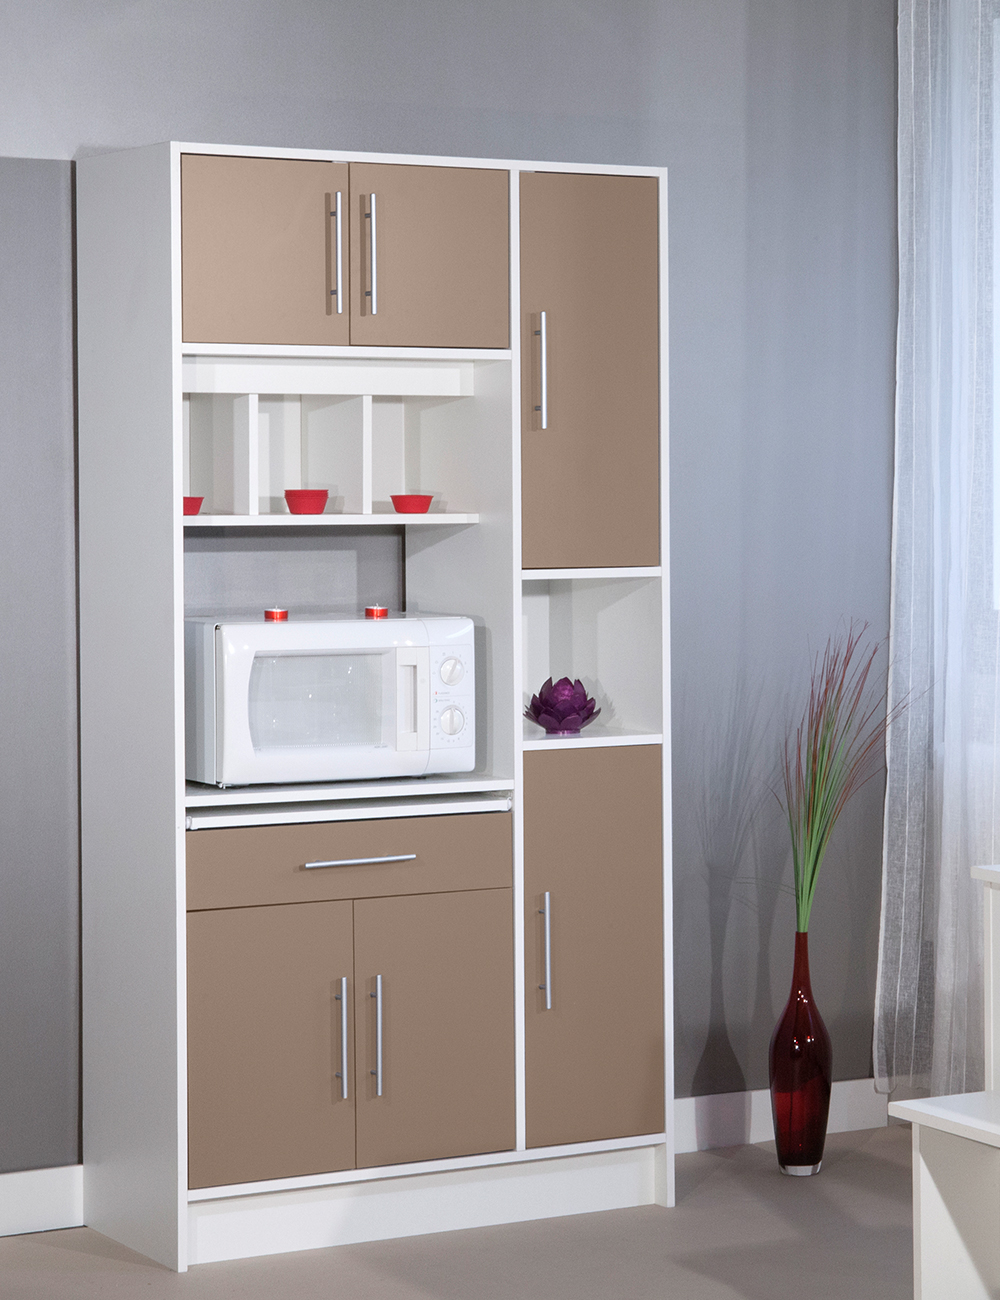 haut meuble micro ondes lucky taupe blanc. Black Bedroom Furniture Sets. Home Design Ideas